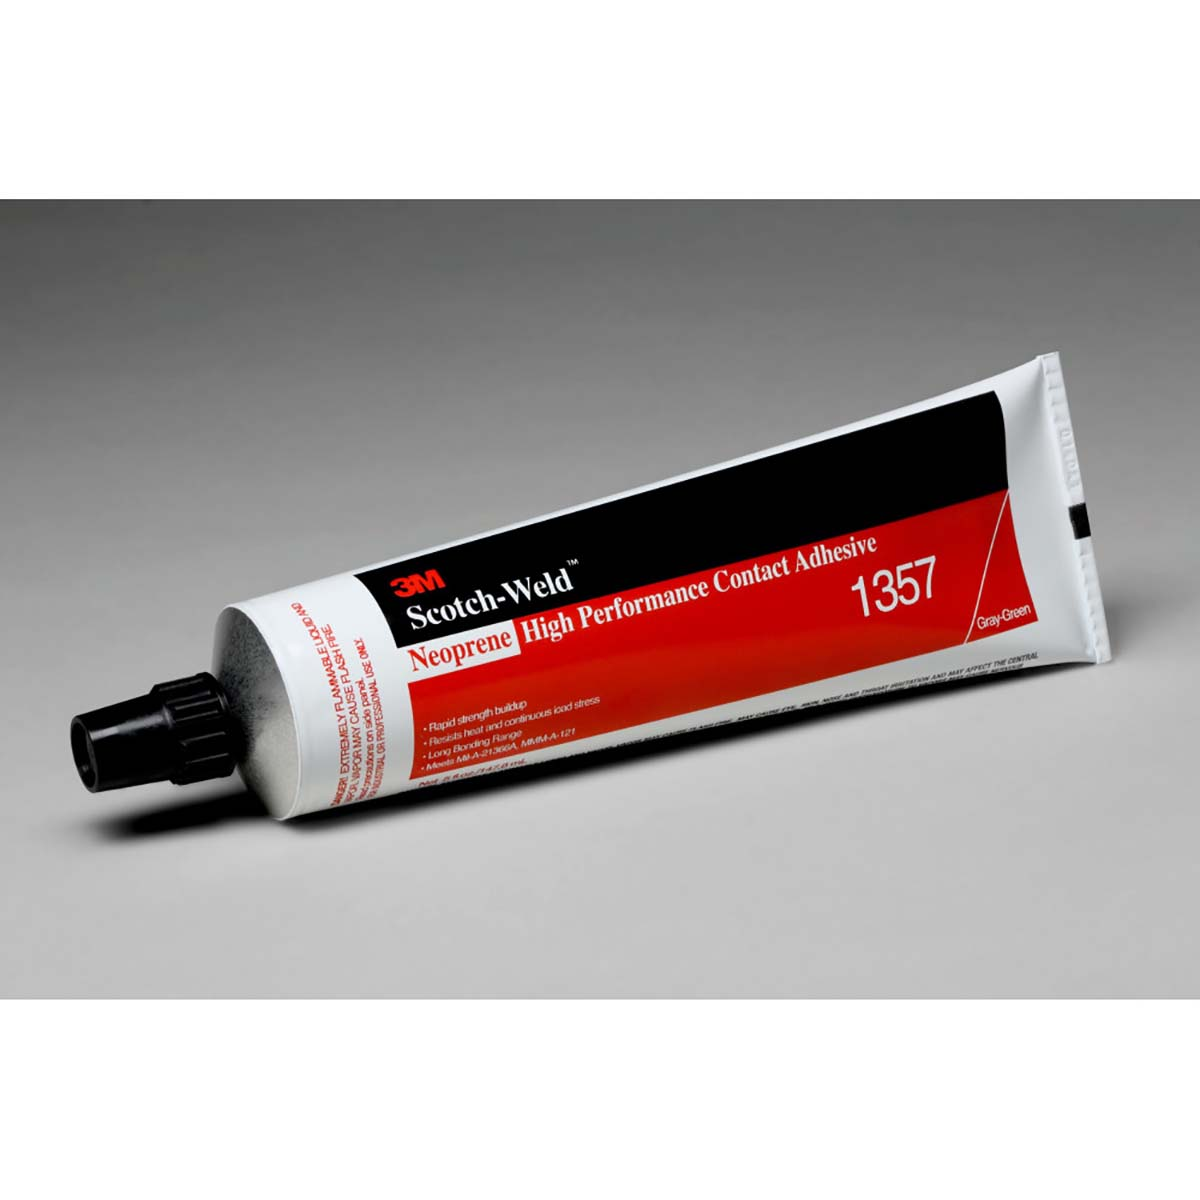 3M Neoprene High Performance Contact Adhesive 1357 Gray-Green, 5 Ounce Tube, 36 per case